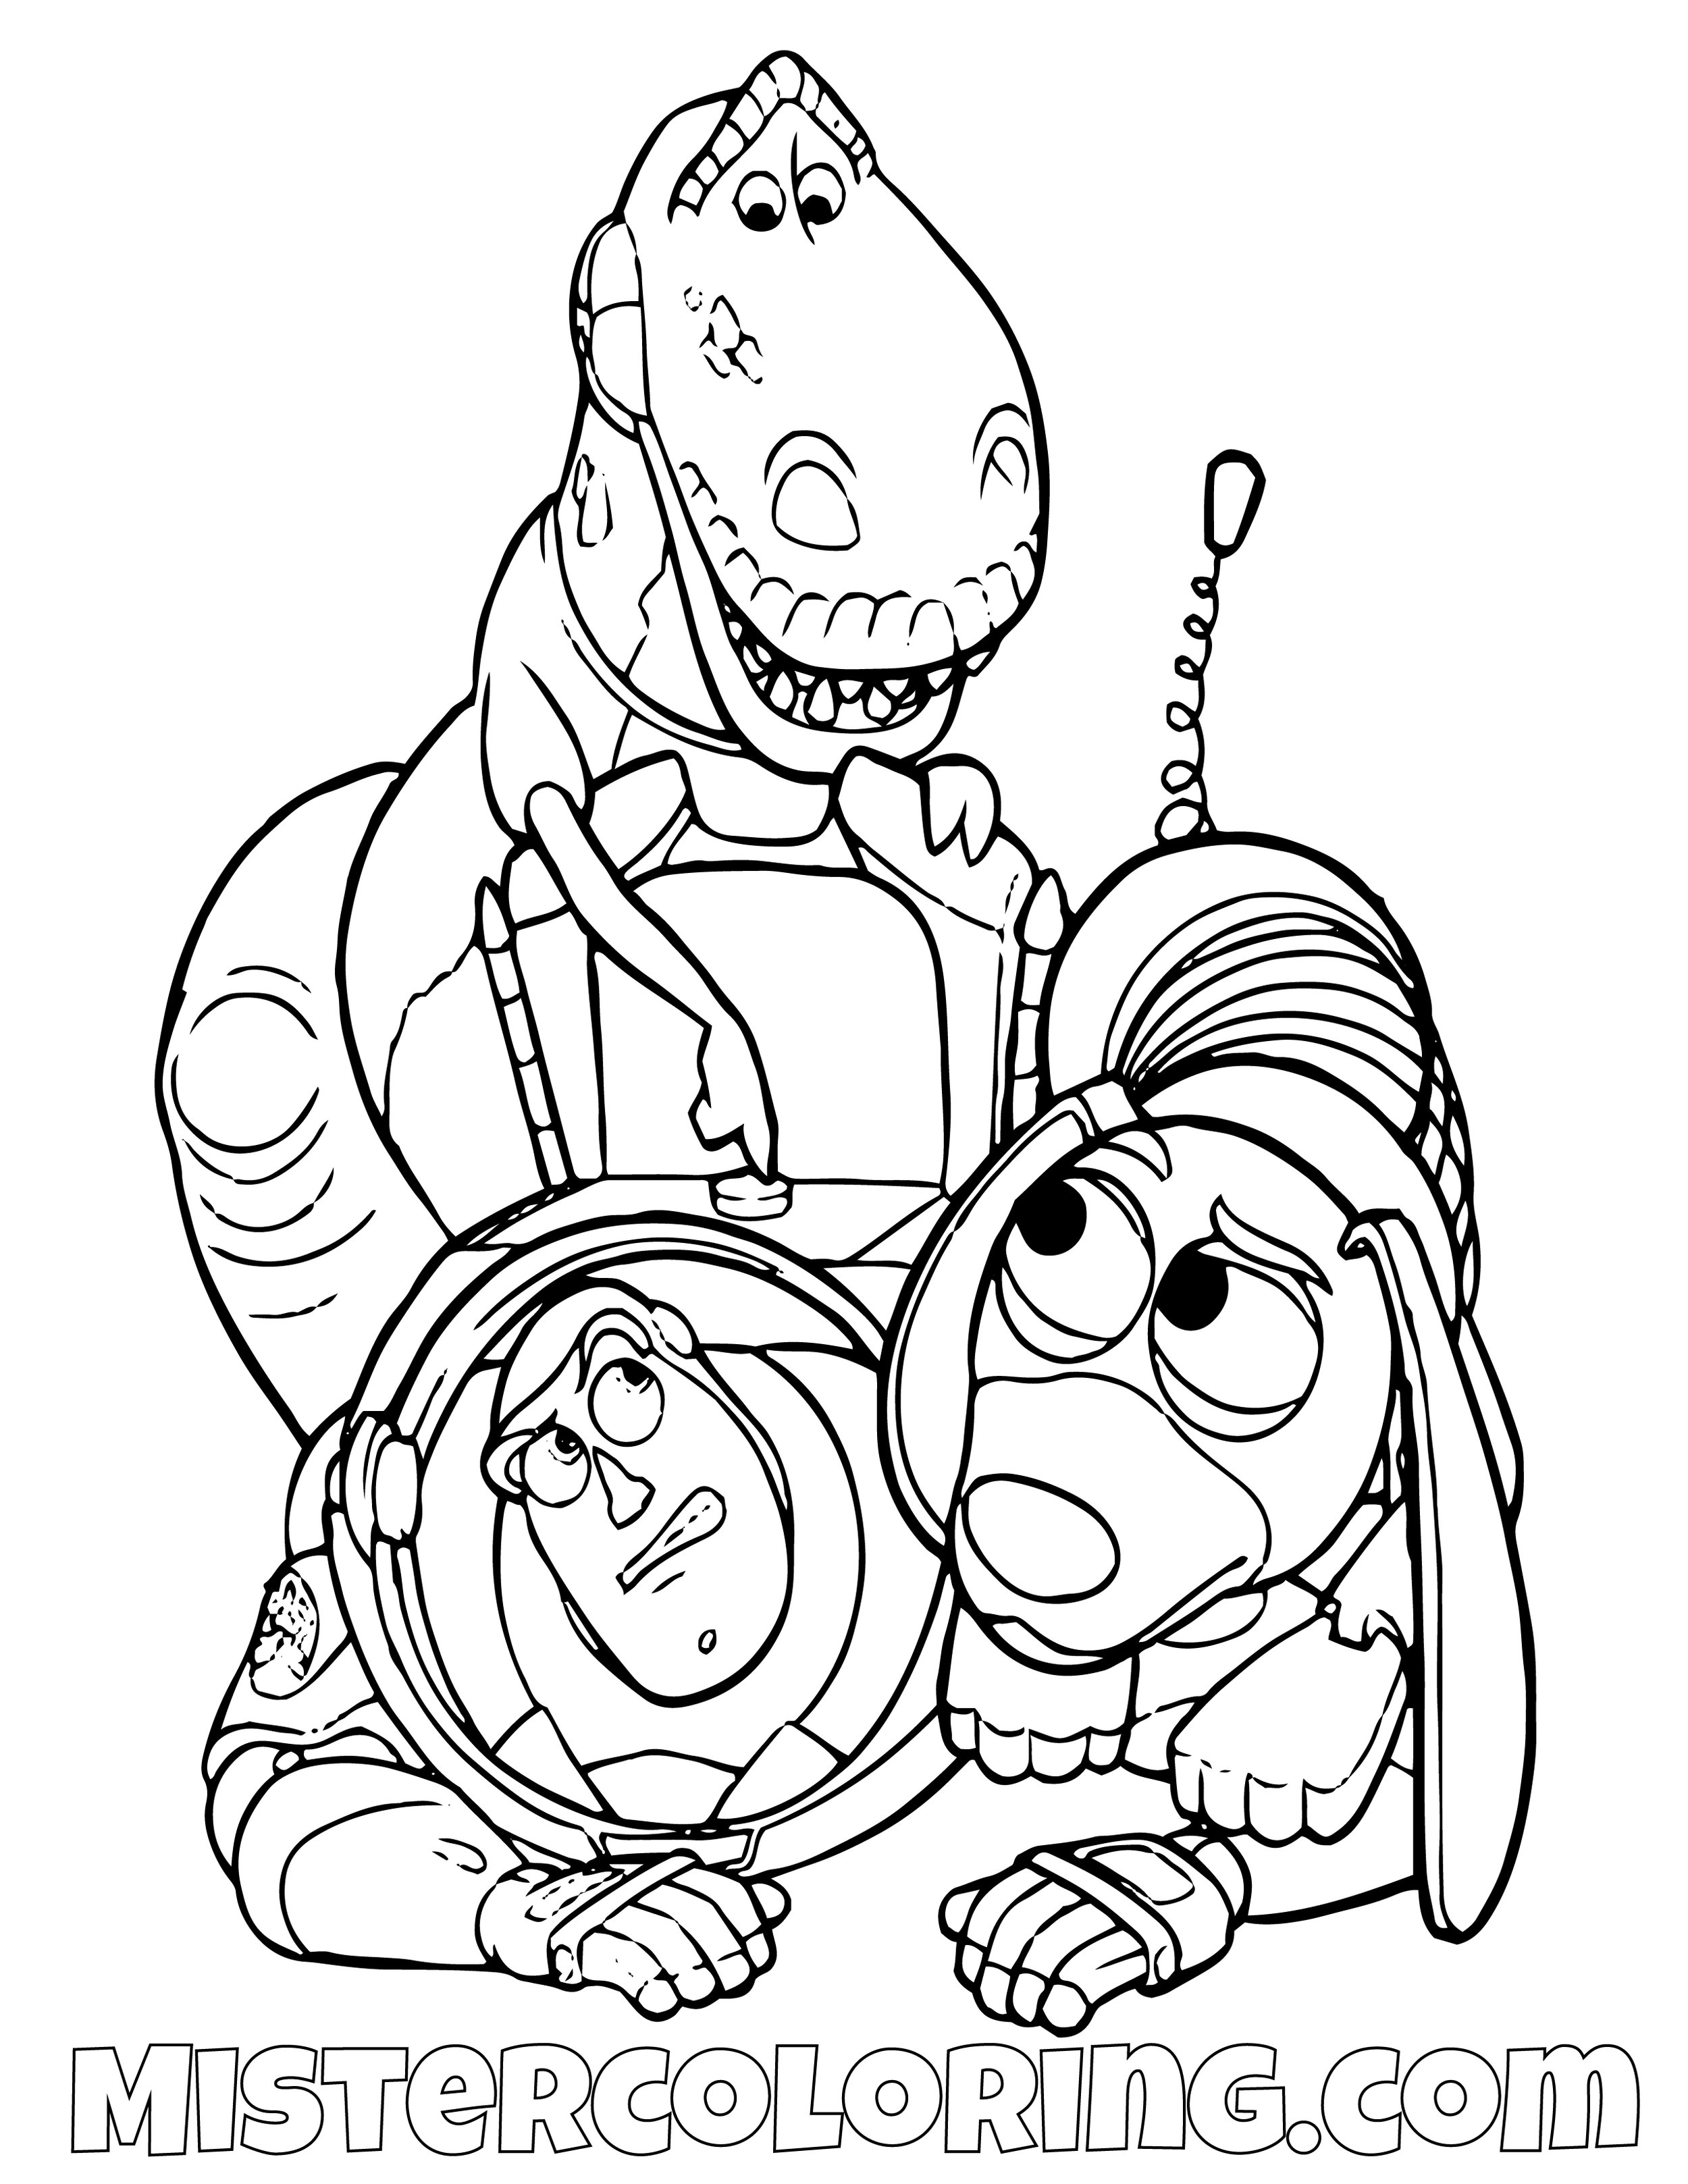 Rex And Slinky Dog Turning Buzz Lightyear Off Toy Story Coloring Page